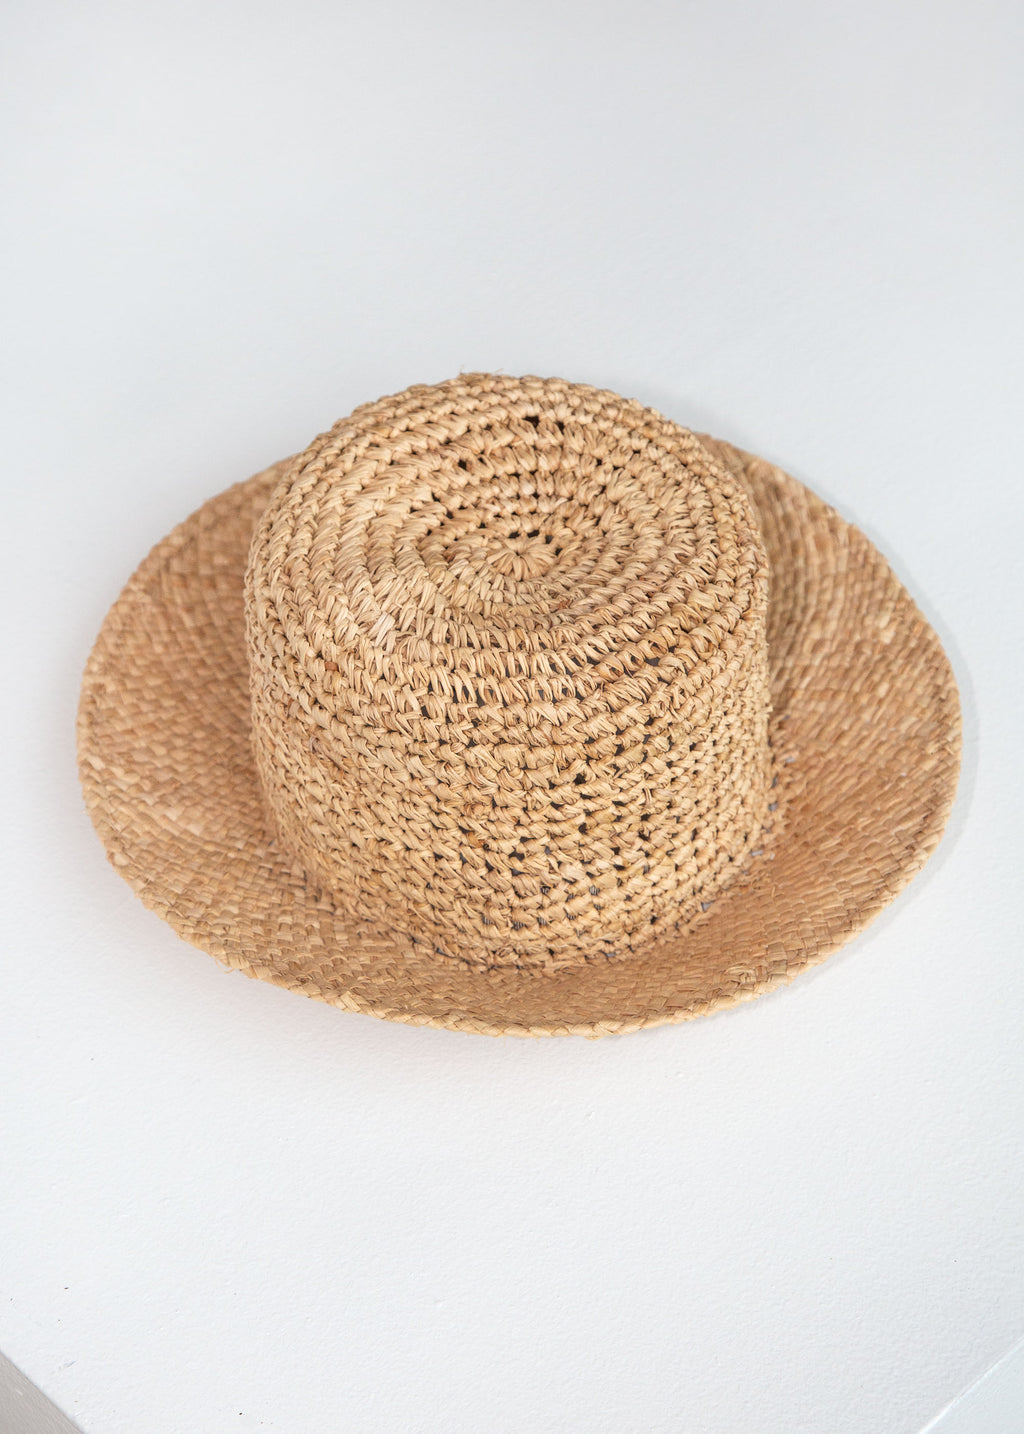 Toni Hat in Crocheted Straw - SOLD OUT